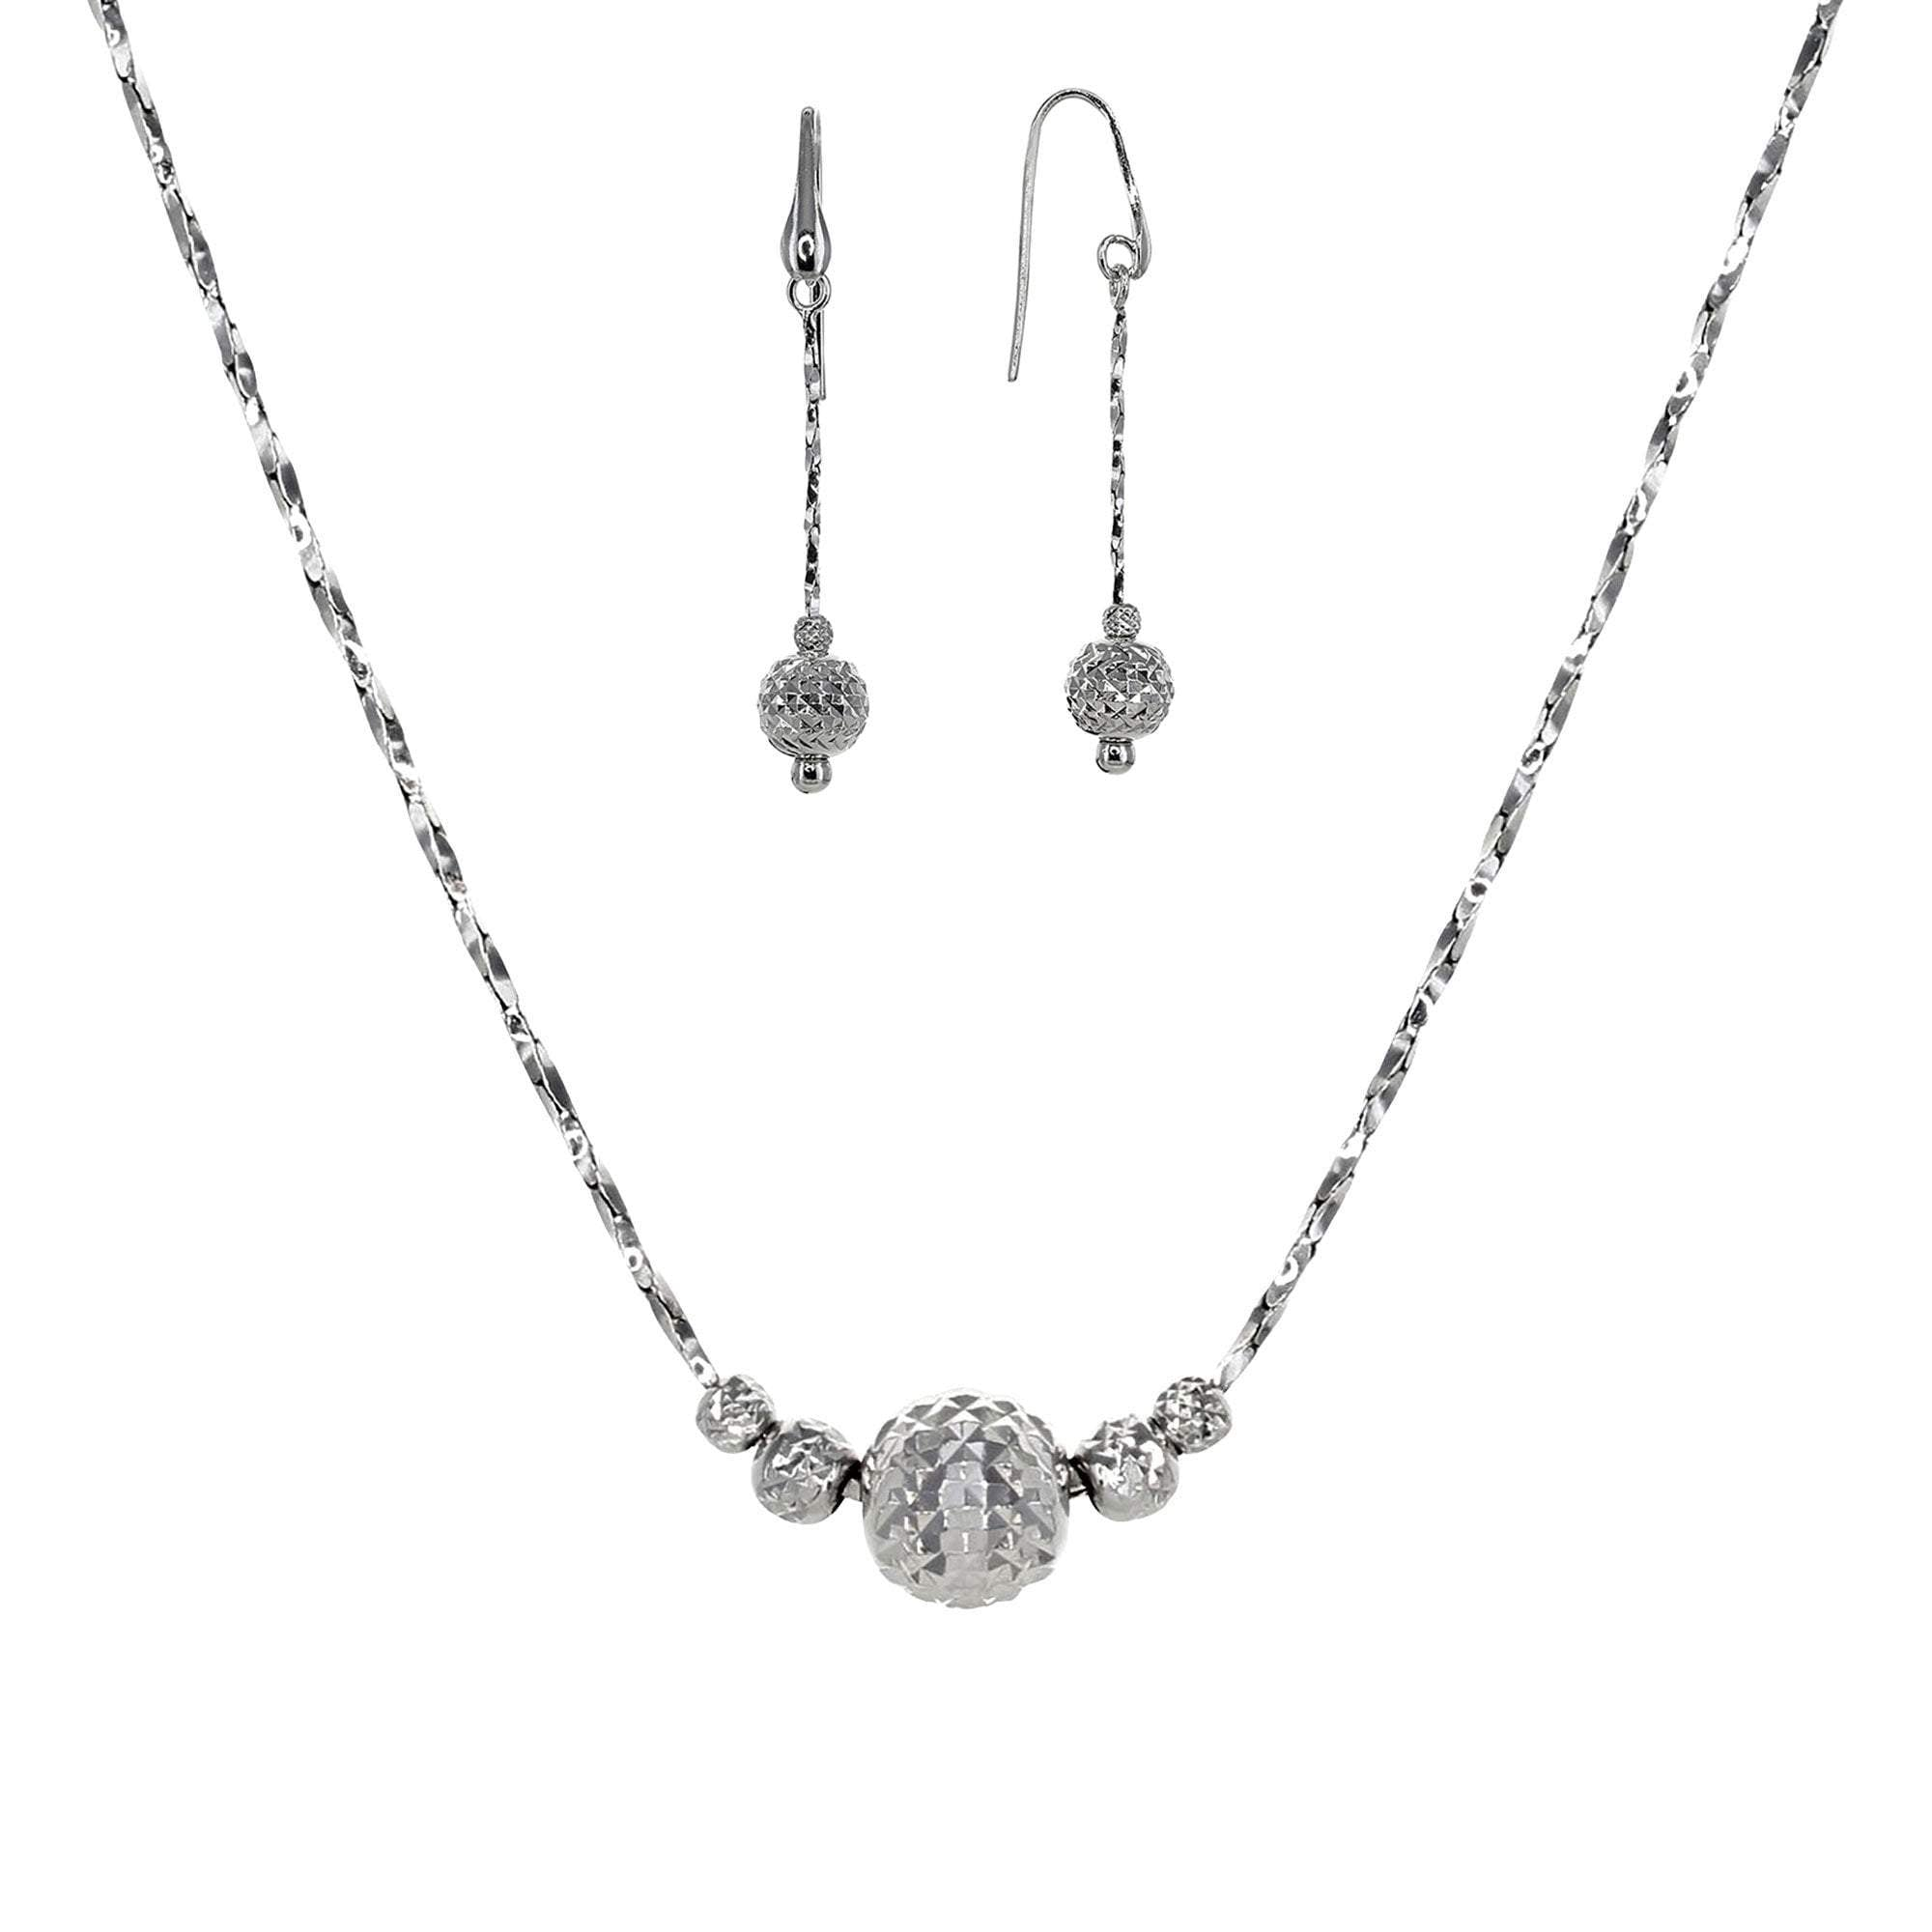 Eros Milano Necklaces Default Title / Silver Thalia Single Ball Necklace and Earring Set with Rhodium Overlay